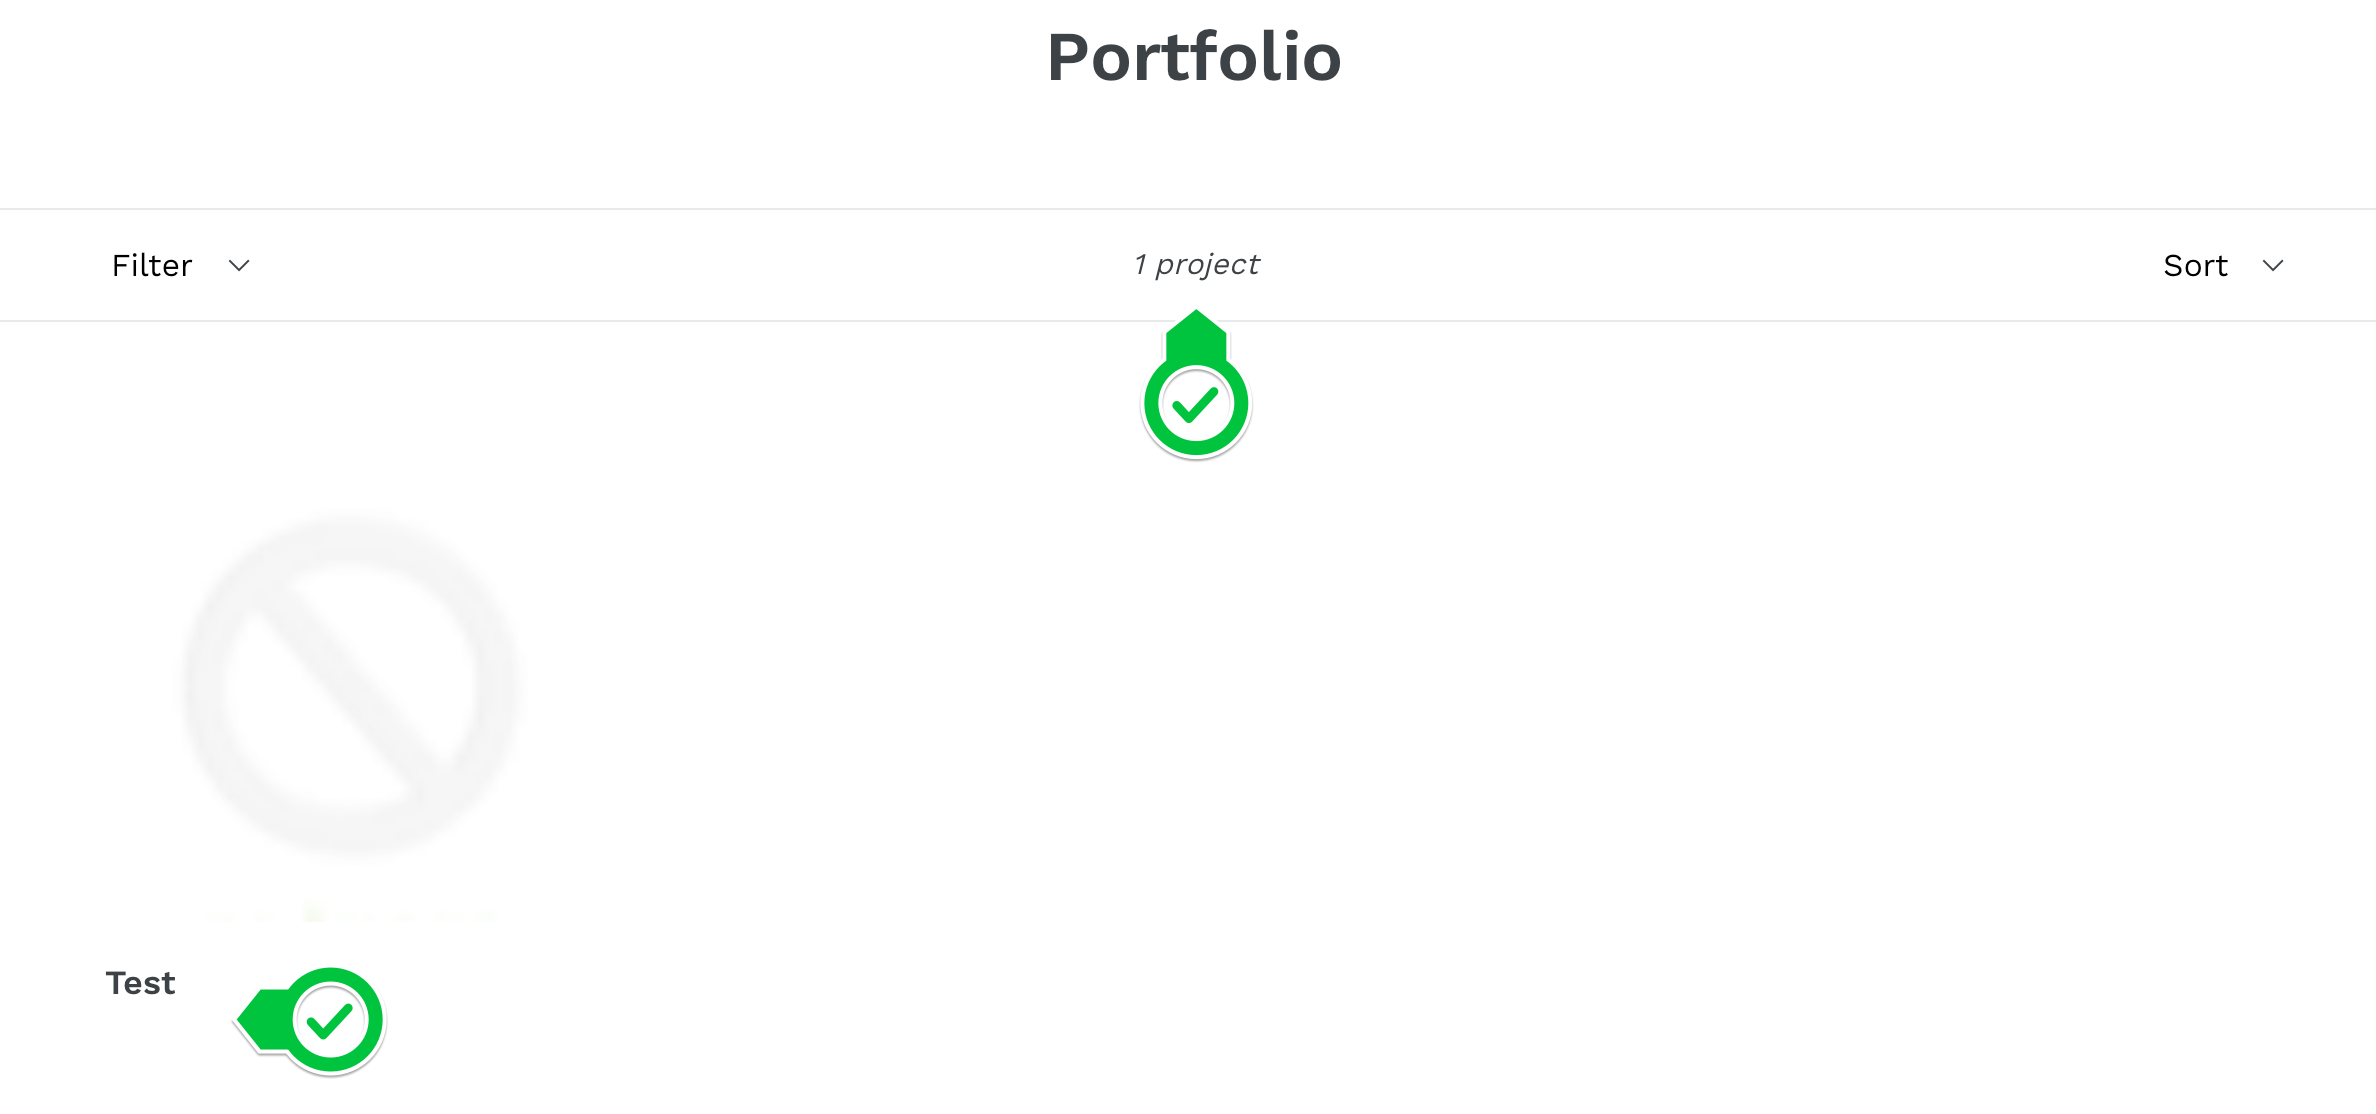 Portfolio page result screenshot